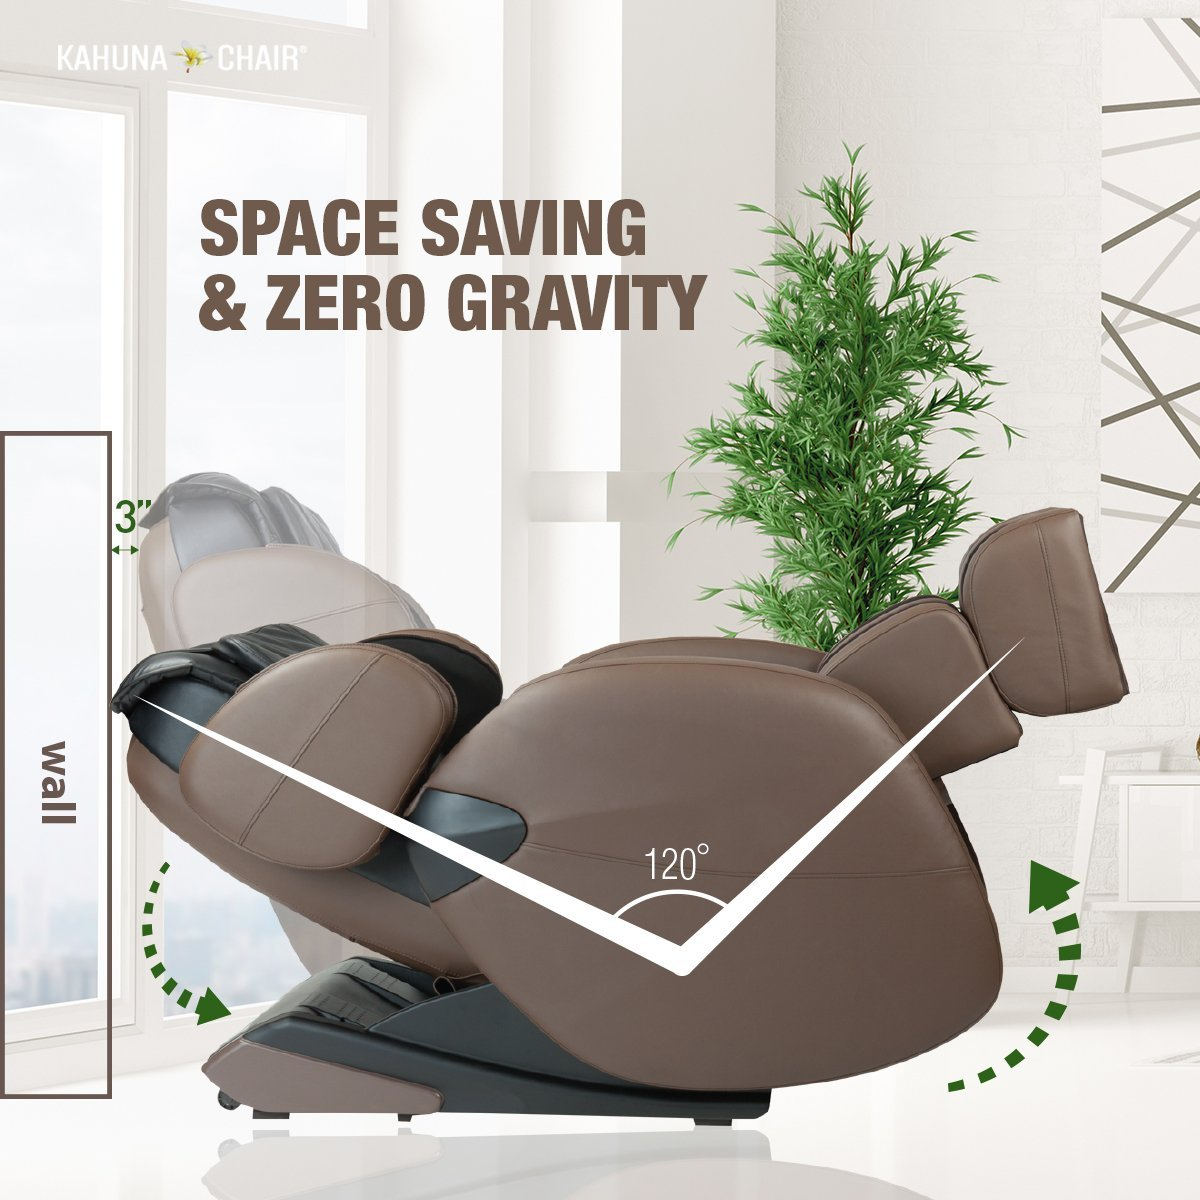 Kahuna LM6800 Space Saving & Zero-Gravity - Kahuna Massage Chair Reviews